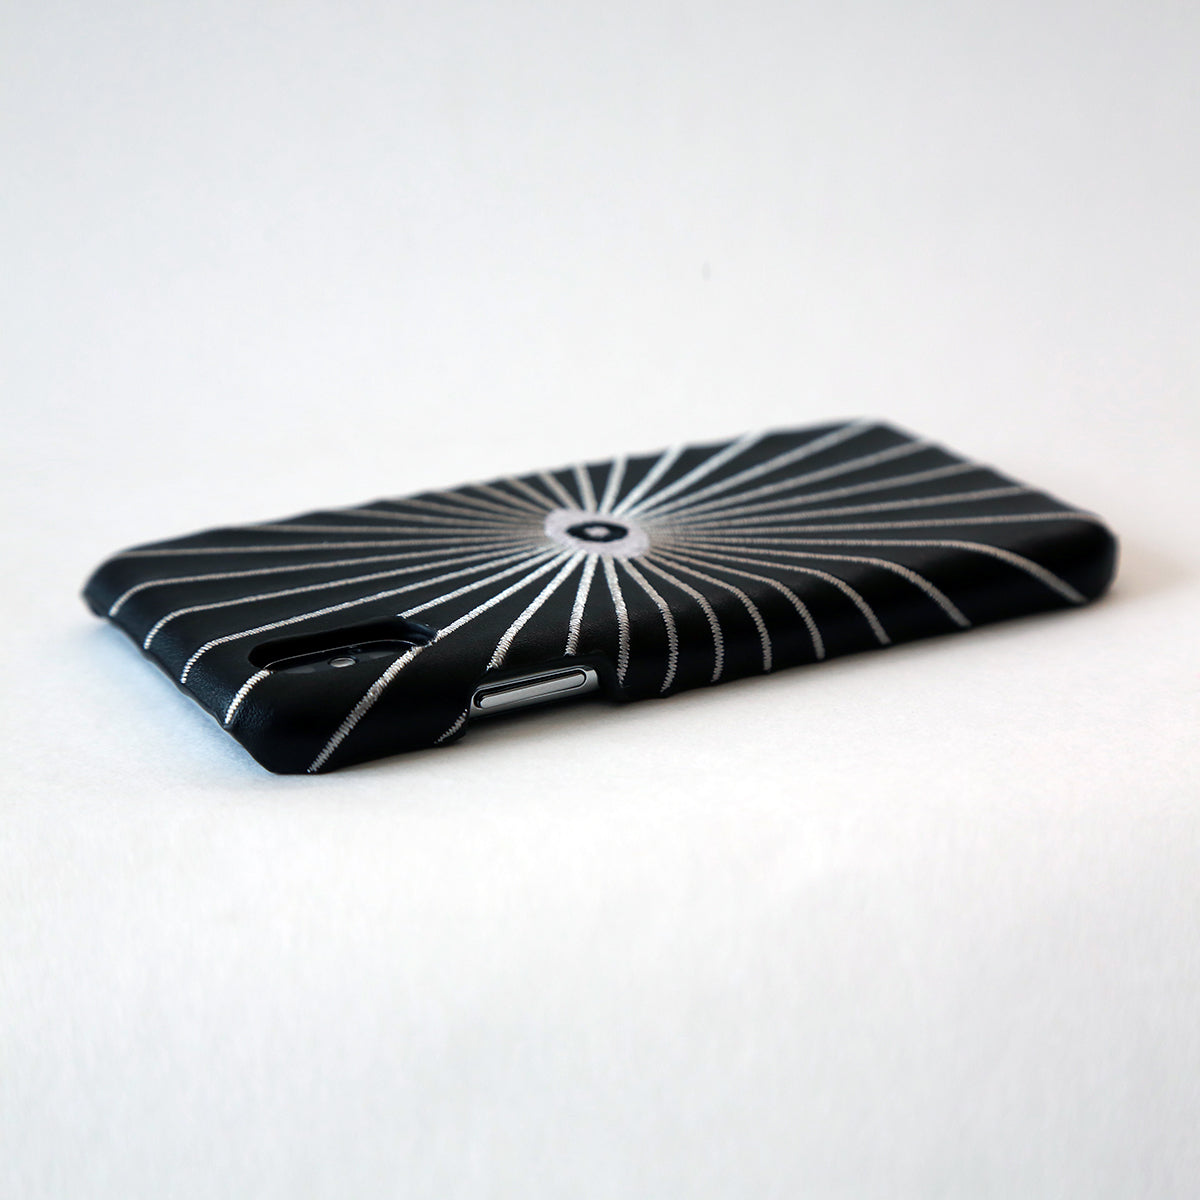 All Seeing Eye | Embroidered iPhone Case by Workshop68